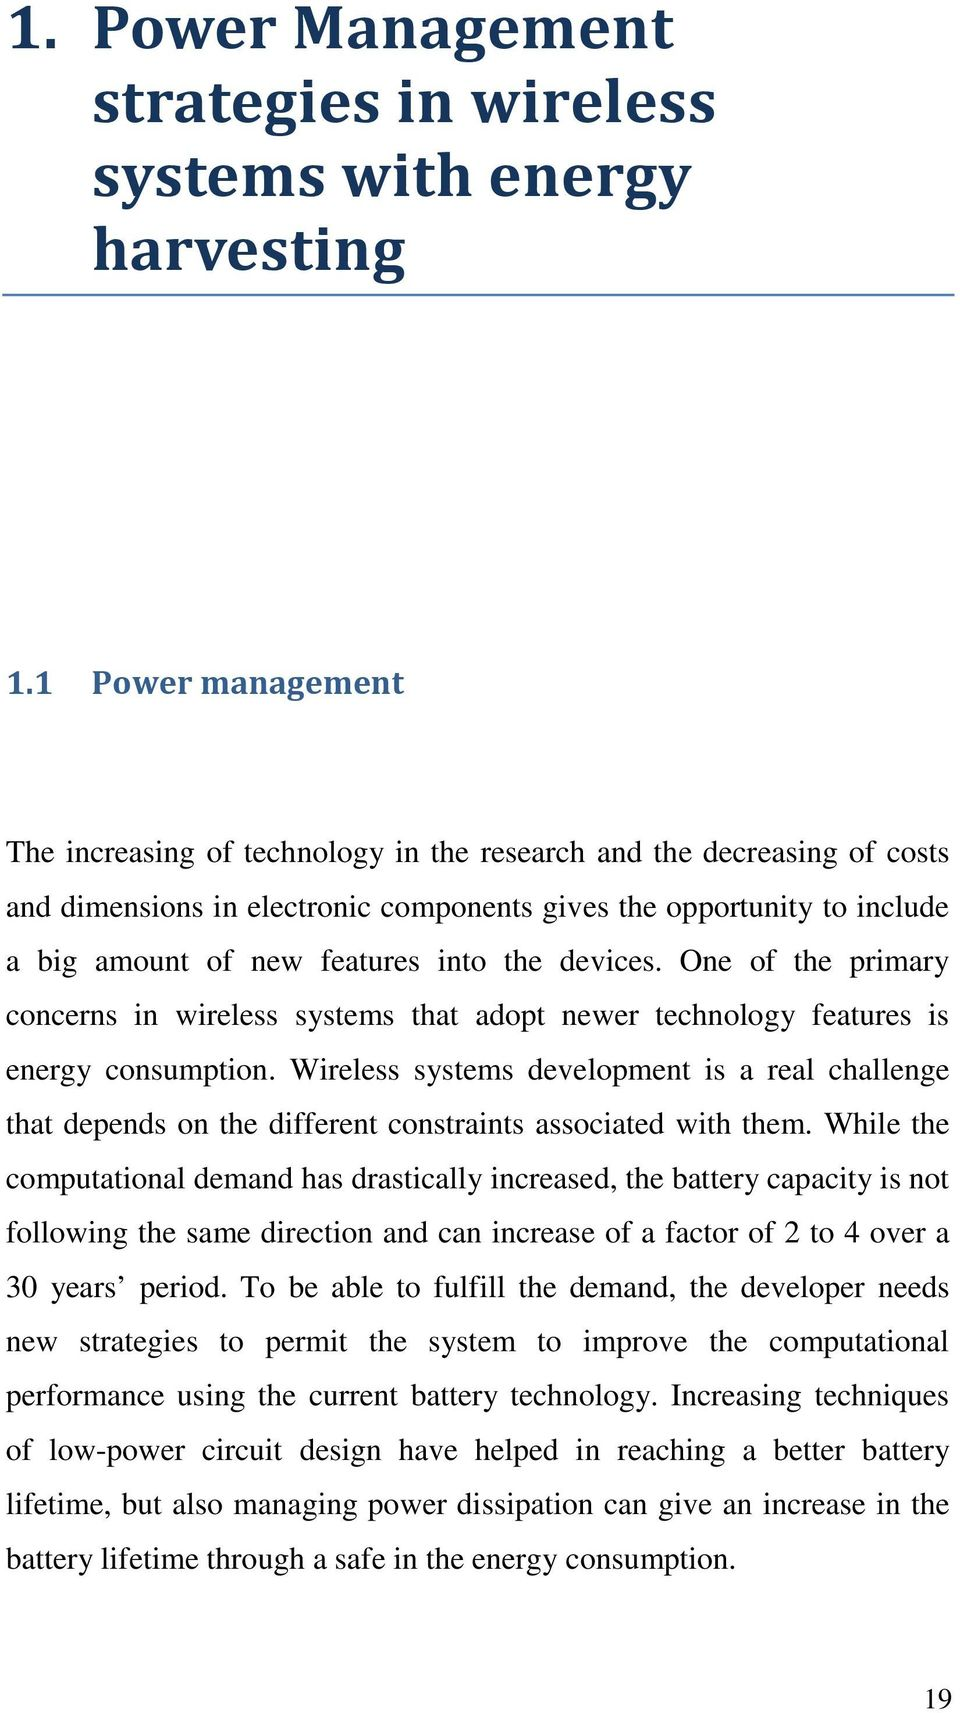 the devices. One of the primary concerns in wireless systems that adopt newer technology features is energy consumption.